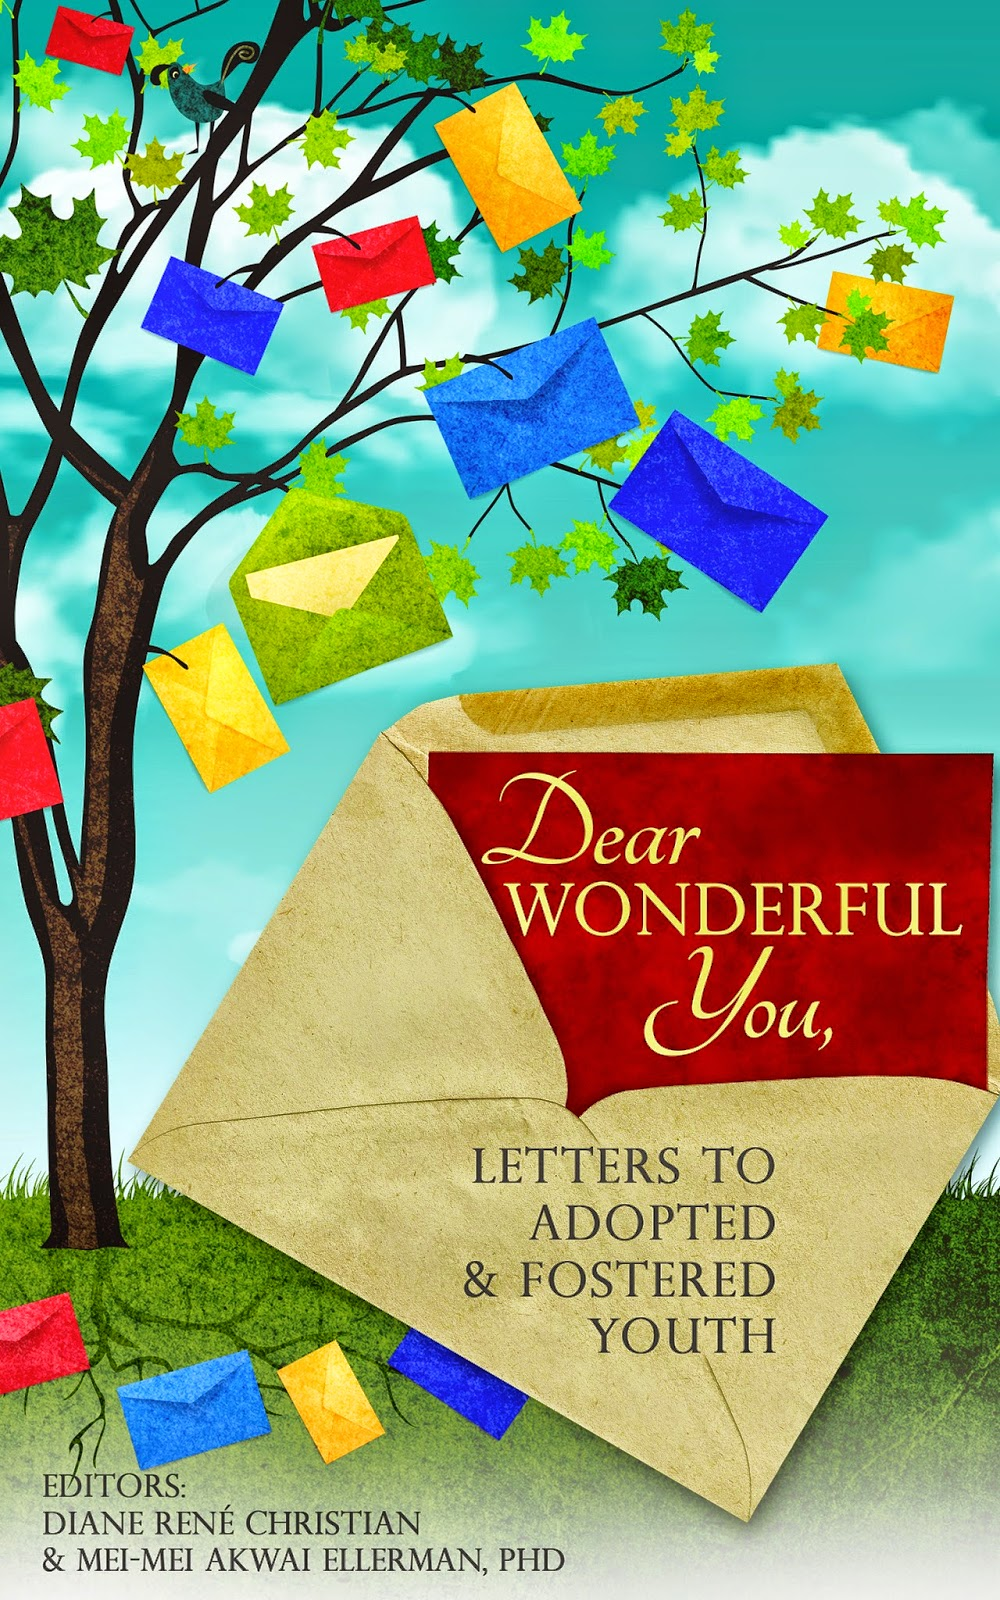 Dear Wonderful You: Letters to Adopted & Fostered Youth